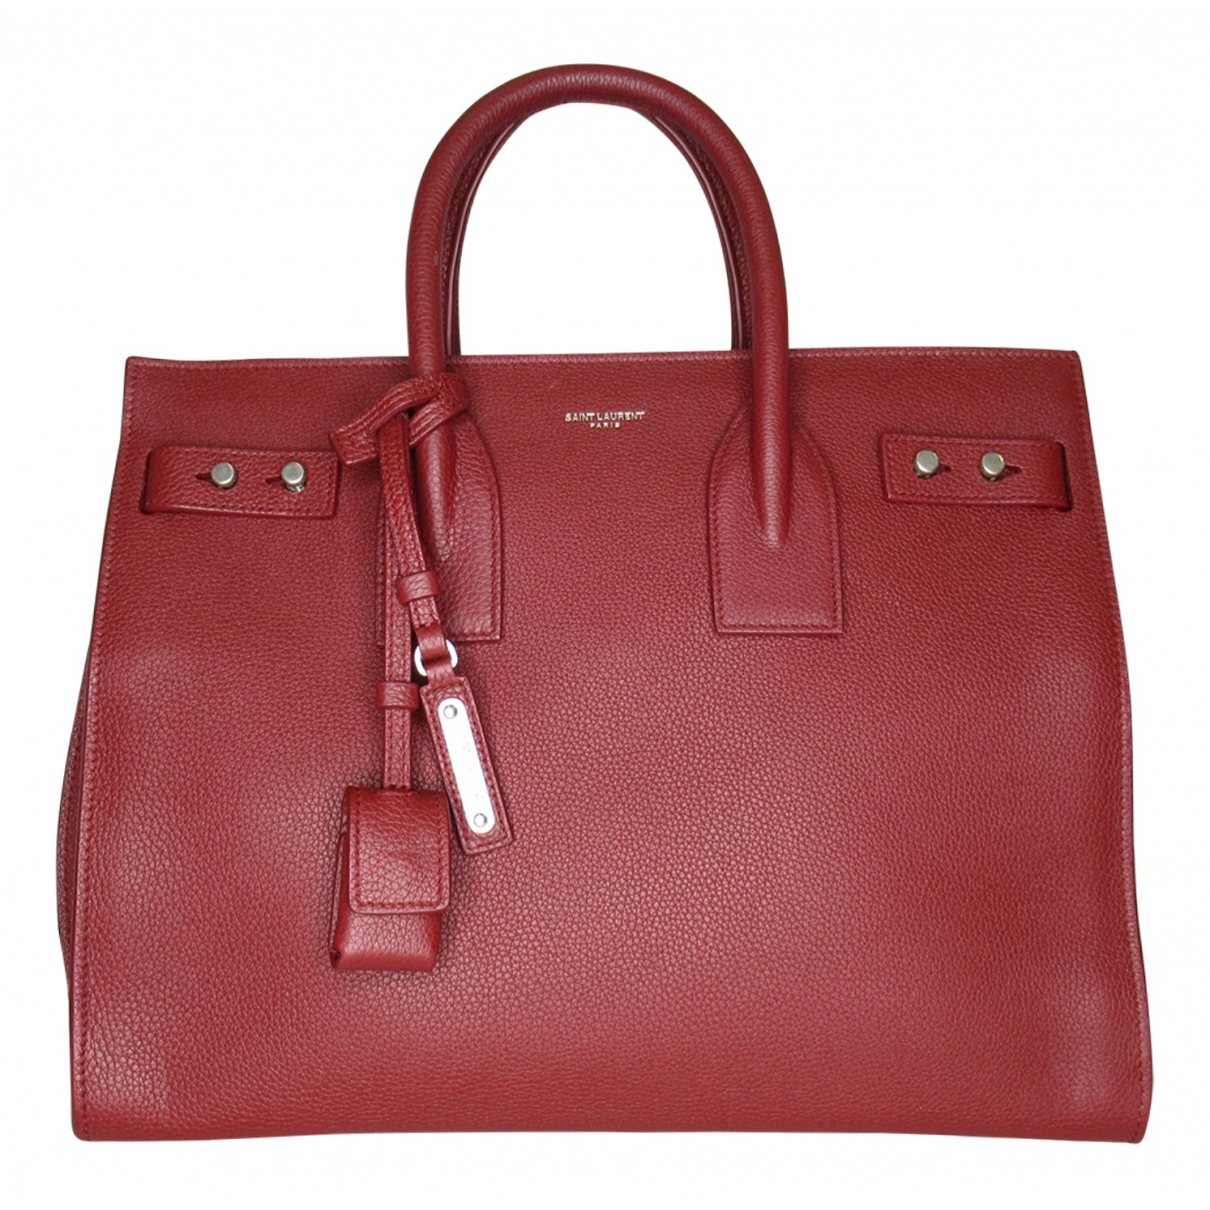 Saint Laurent Sac de Jour Red Leather handbag for Women N